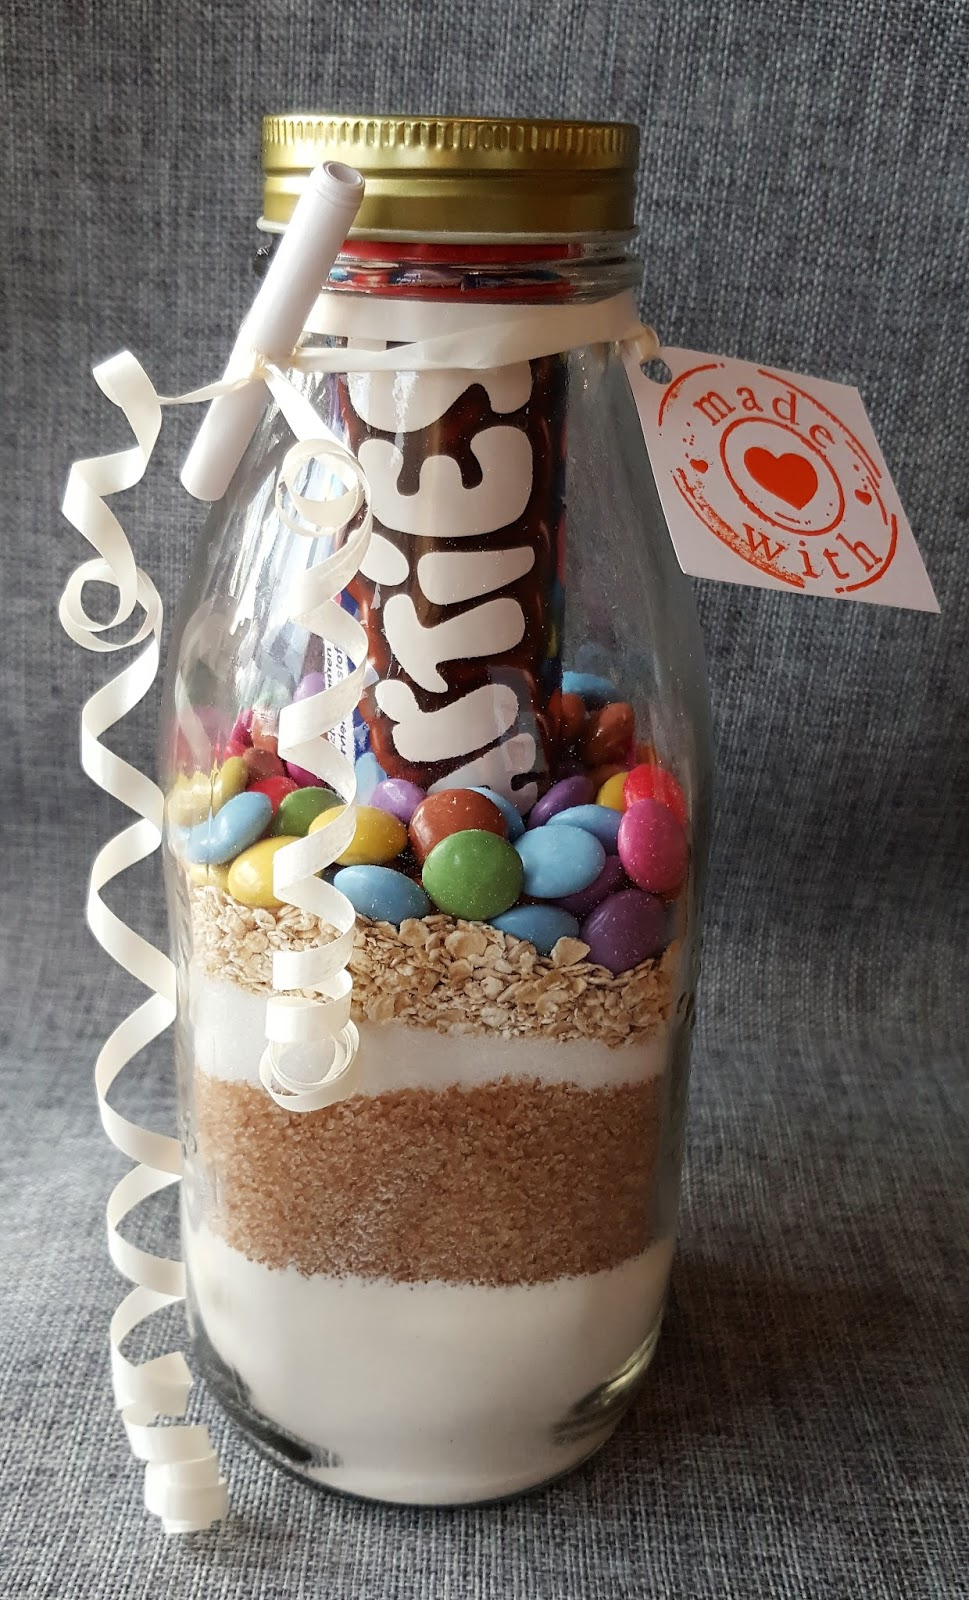 Bettys Kochlöffel Backmischung Im Glas Smarties Cookies